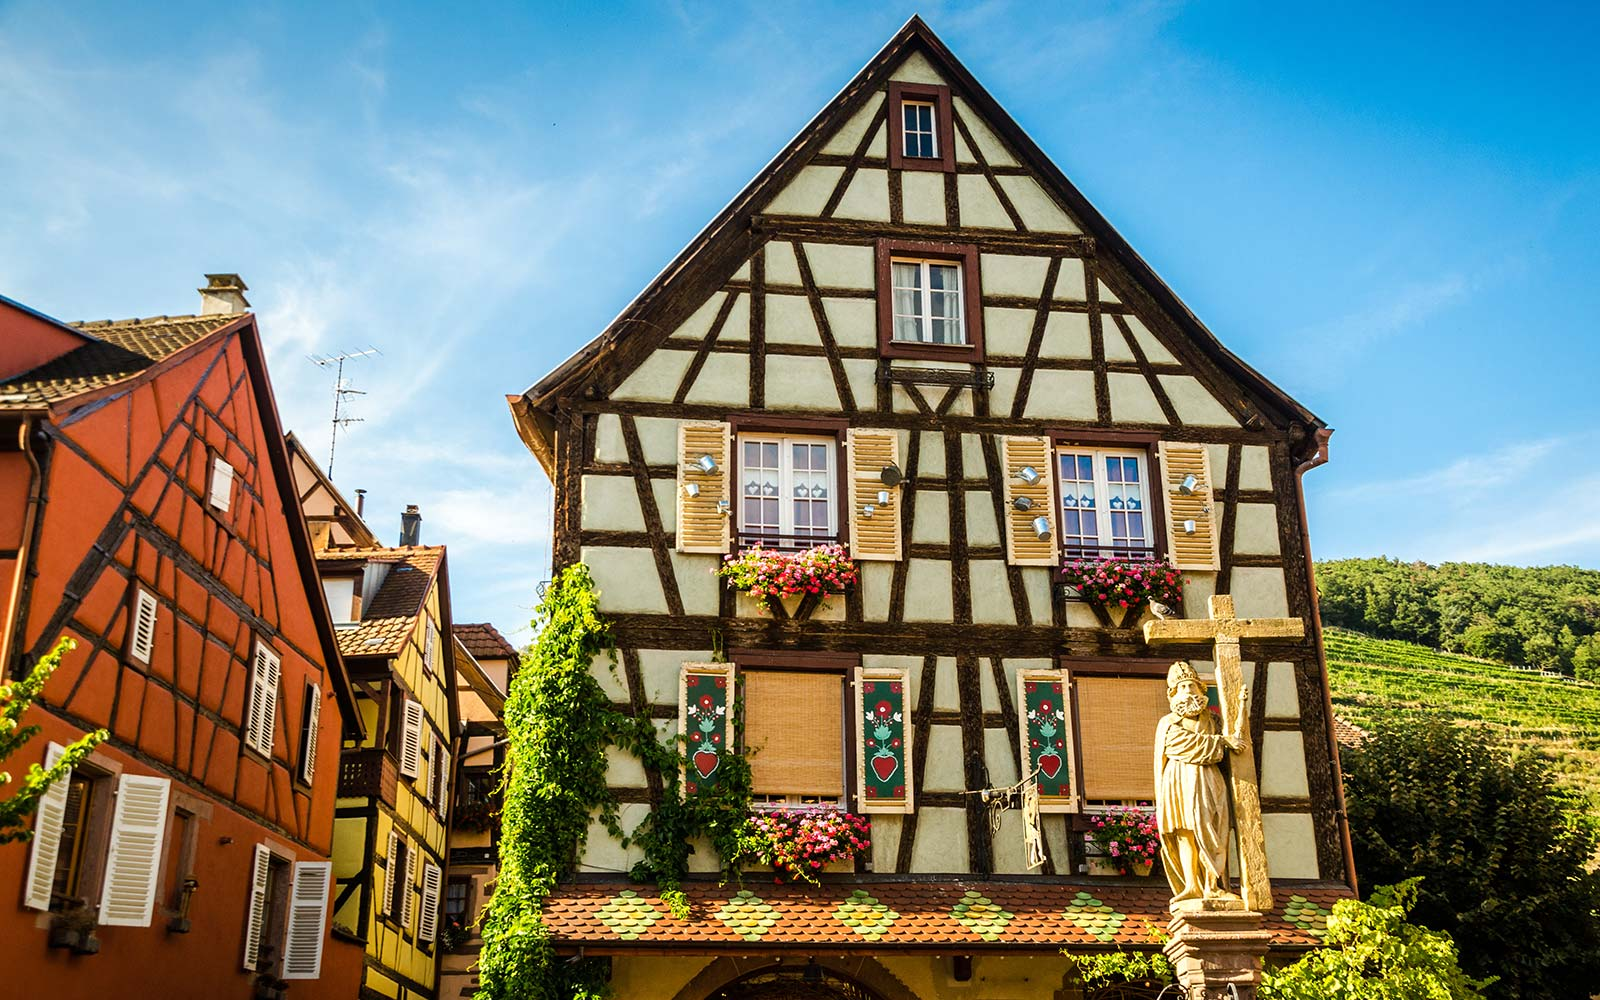 Kaysersberg is a picturesque medieval village located on the  Alsace Wine Route . This building is one of the many beautiful and colourful half timbered houses of the village and it's located in Jean Ittel Square. The fountain is named after emperor Const